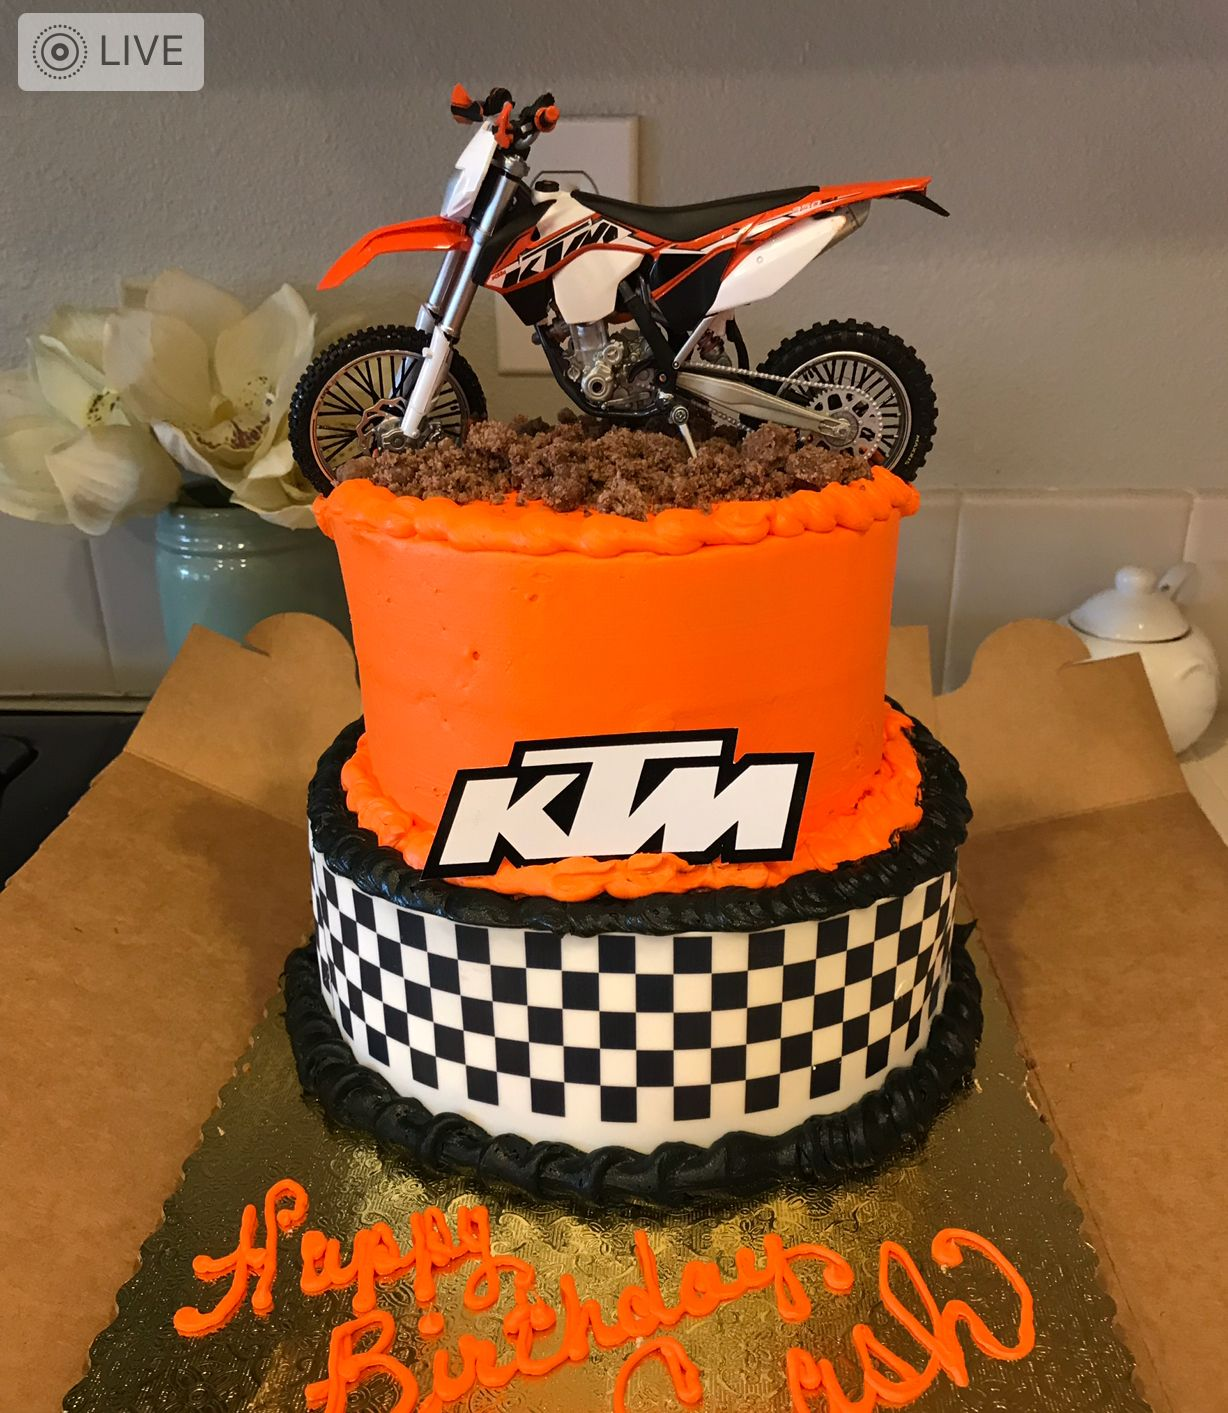 Ktm Racing Dirt Bike Birthday Cake With Images Motorcycle